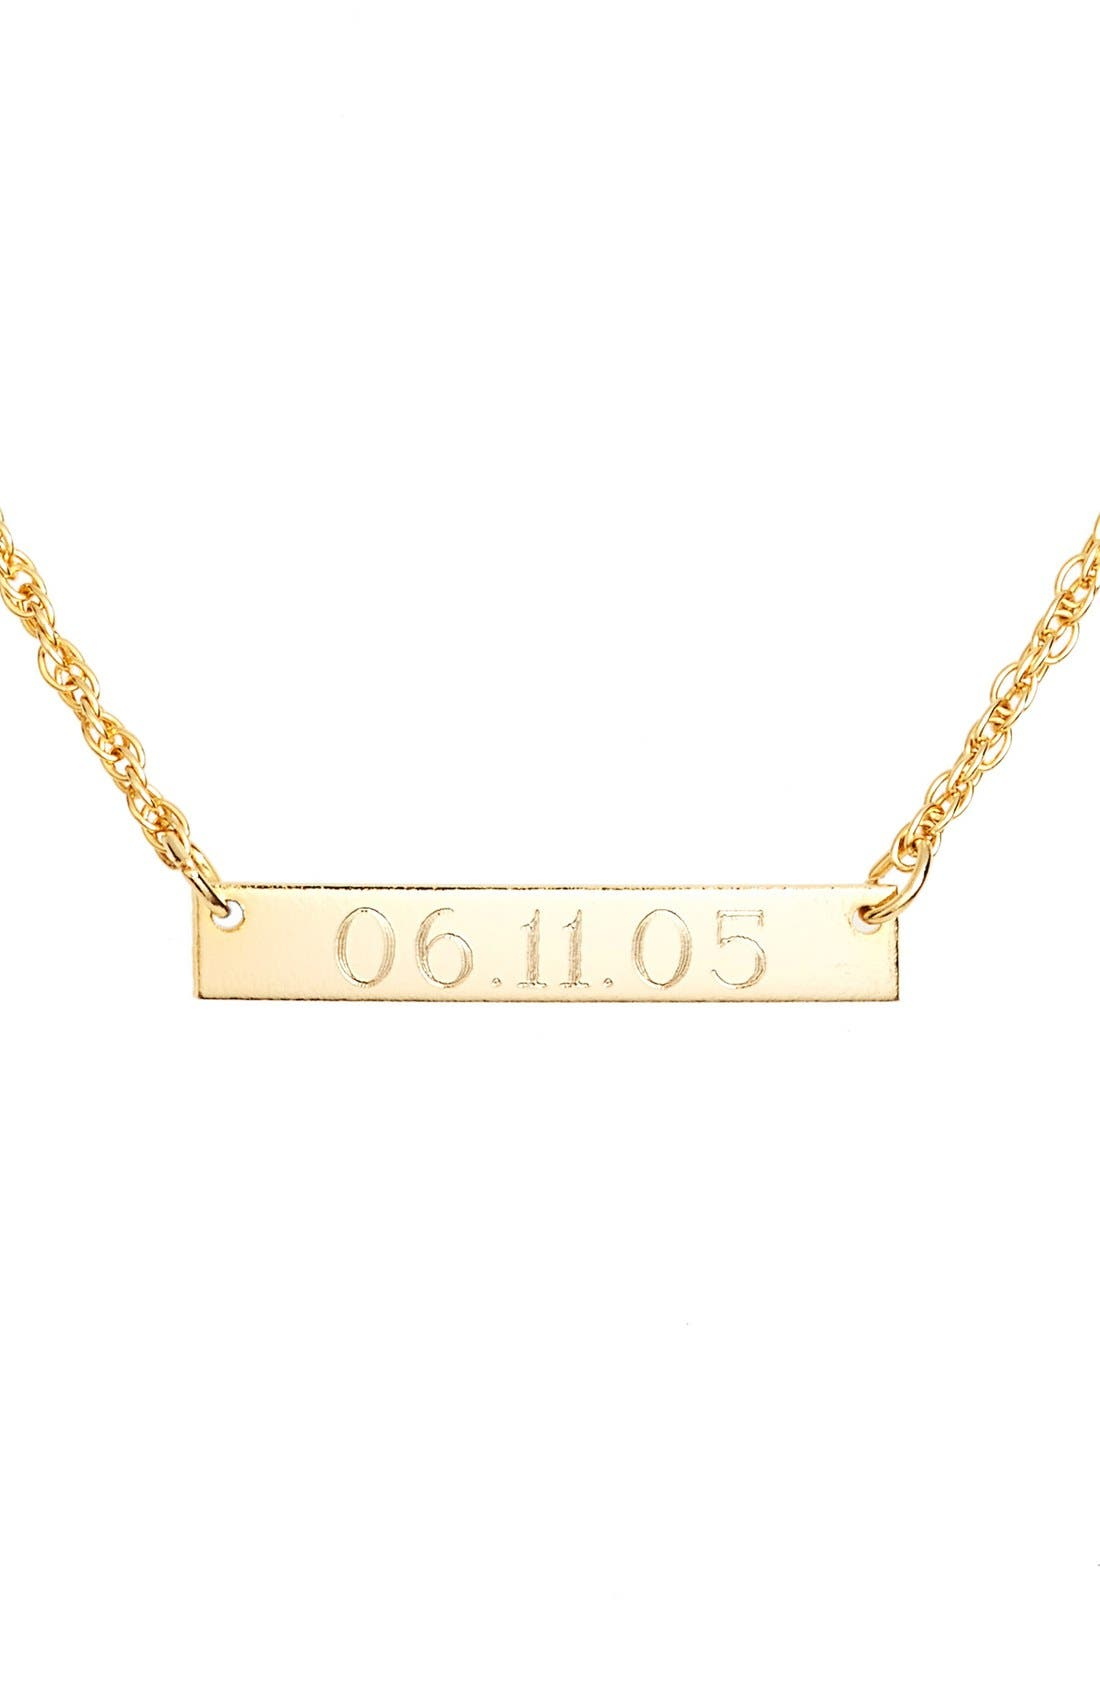 Alternate Image 1 Selected - Moon and Lola 'Block Font' Personalized Bar Pendant Necklace (Online Only)